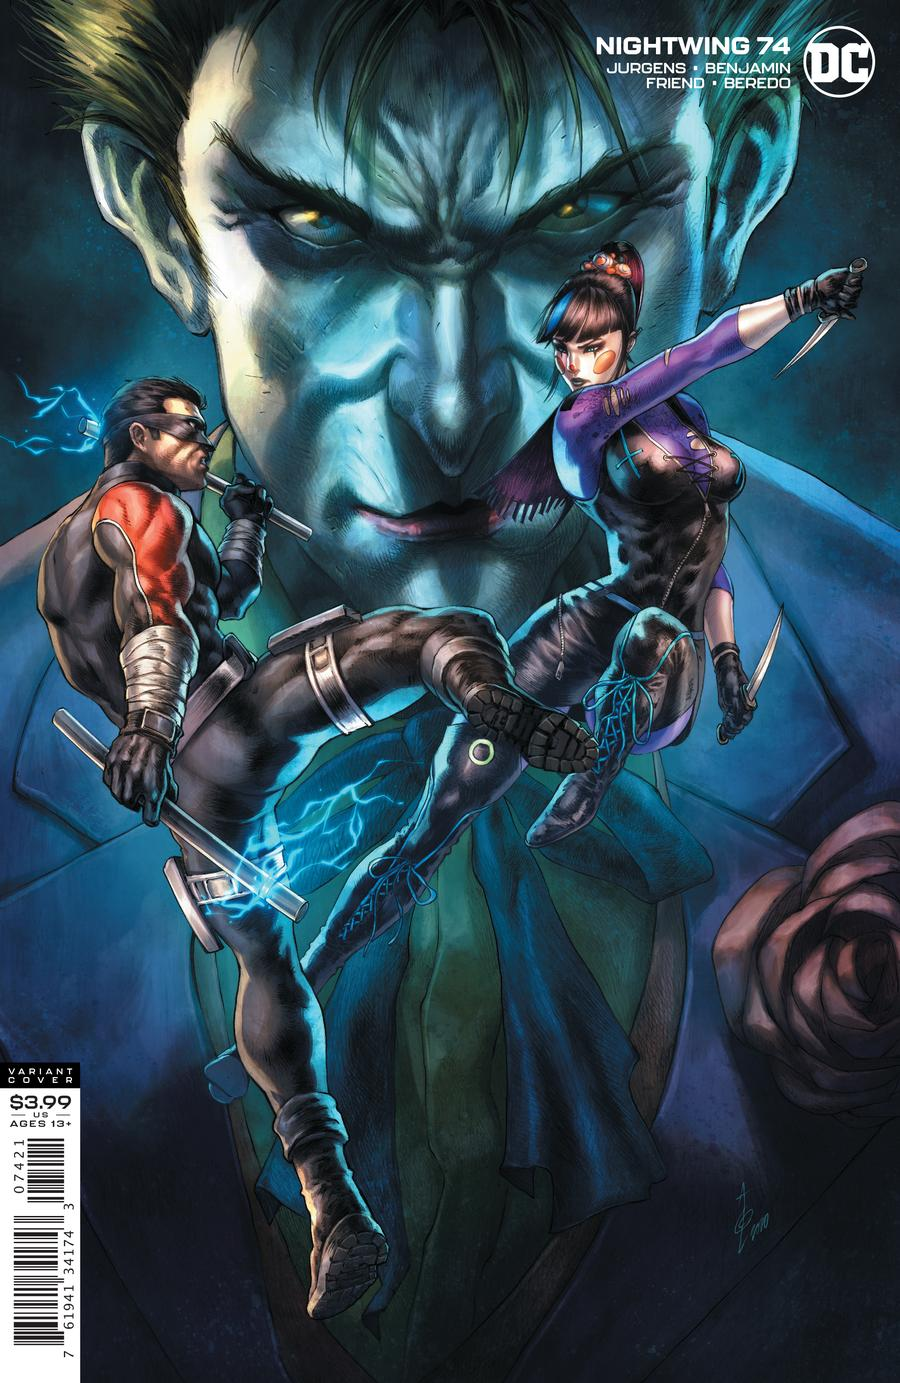 Nightwing Vol 4 #74 Cover B Alan Quah Variant